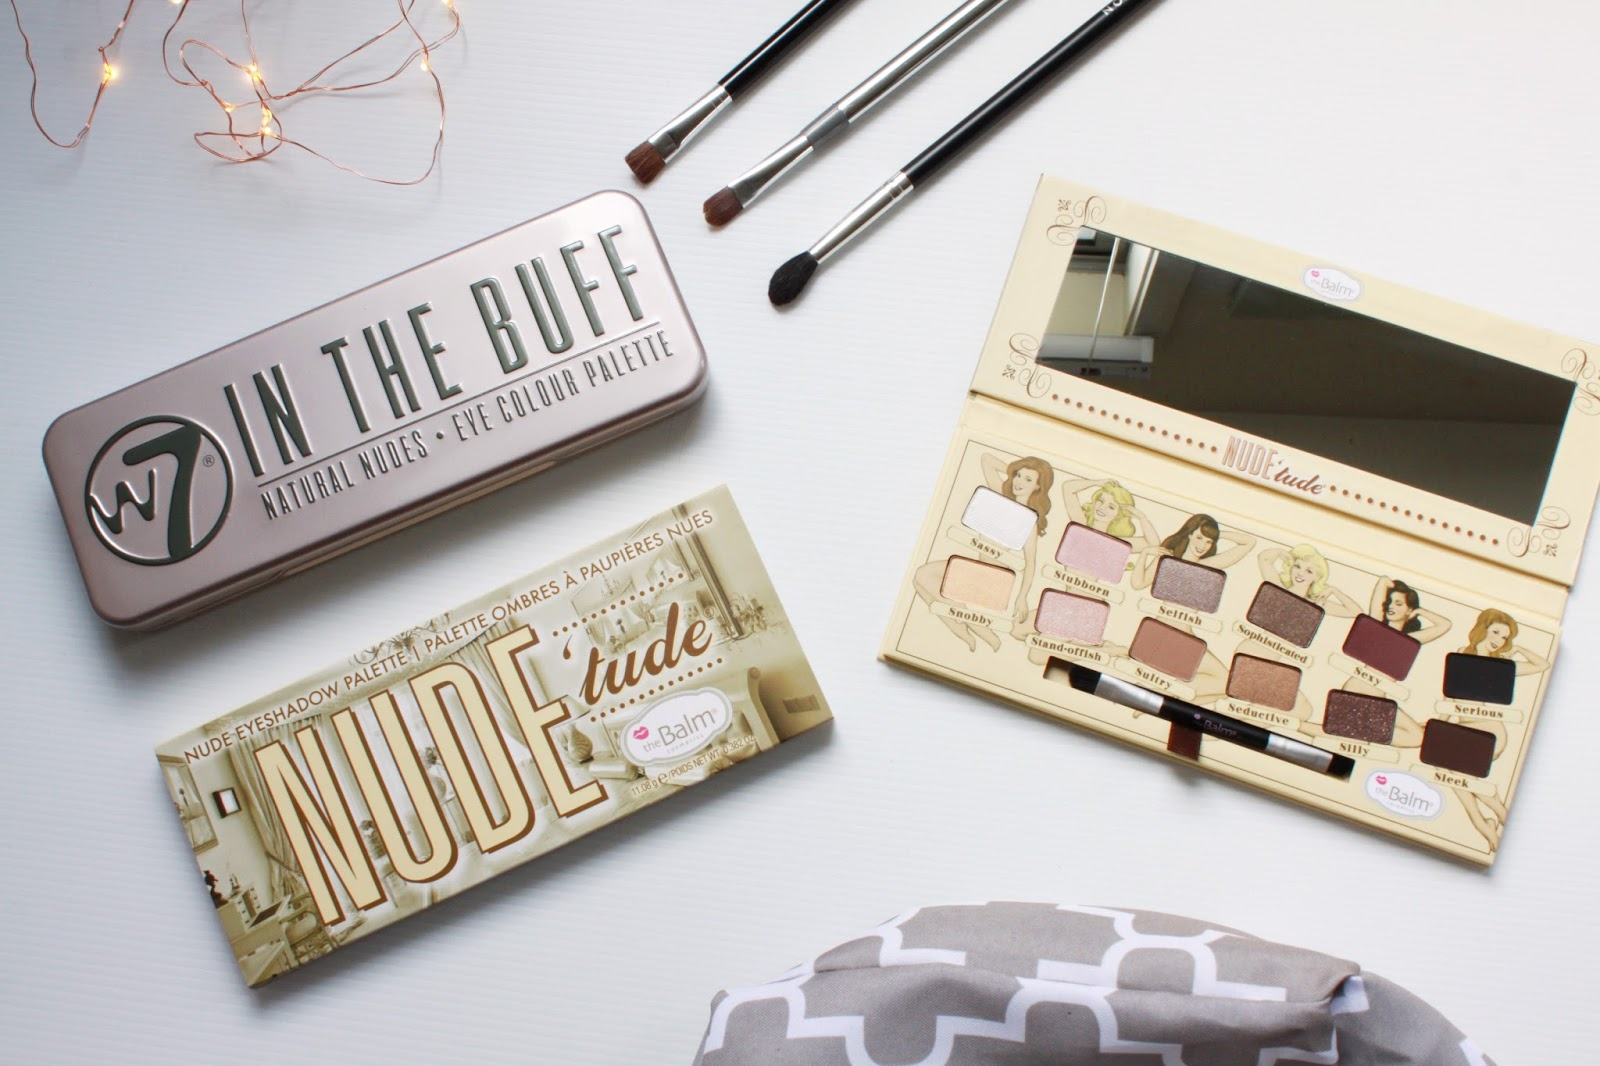 W7 Cosmetics In the Buff and theBalm Nude Tude